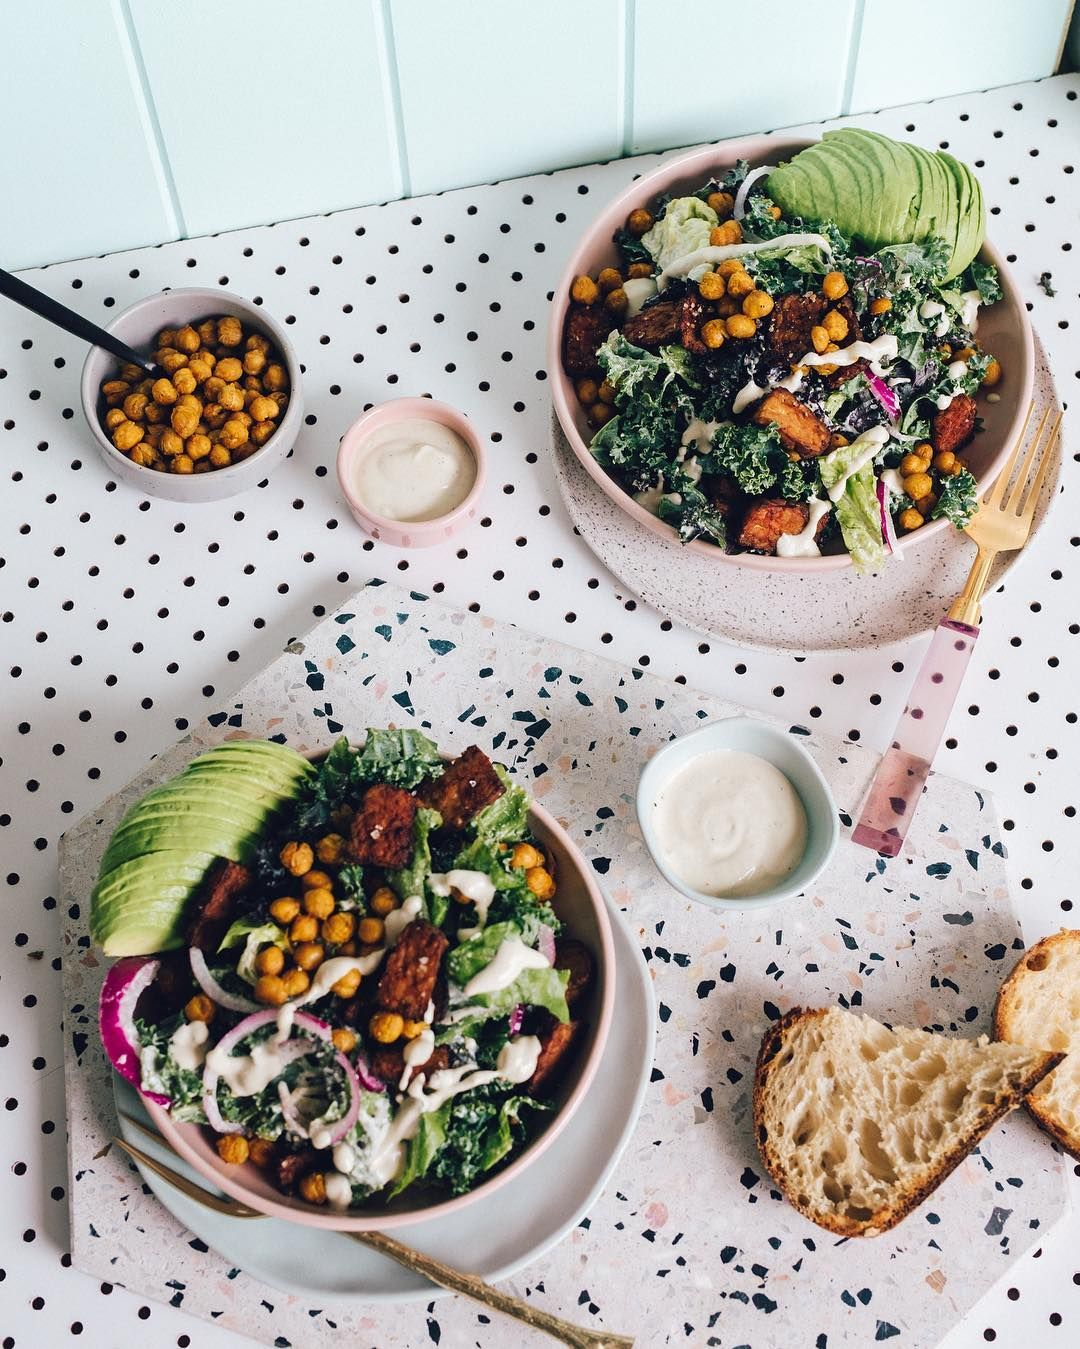 """ELLIE BULLEN ⋆ PLANT-BASED on Instagram: """"EAT MORE SALAD 🍃 if I could give 1 piece of health advice to people it would be to eat more veggies, anddd the best way to do this is by…""""  – Fitness"""